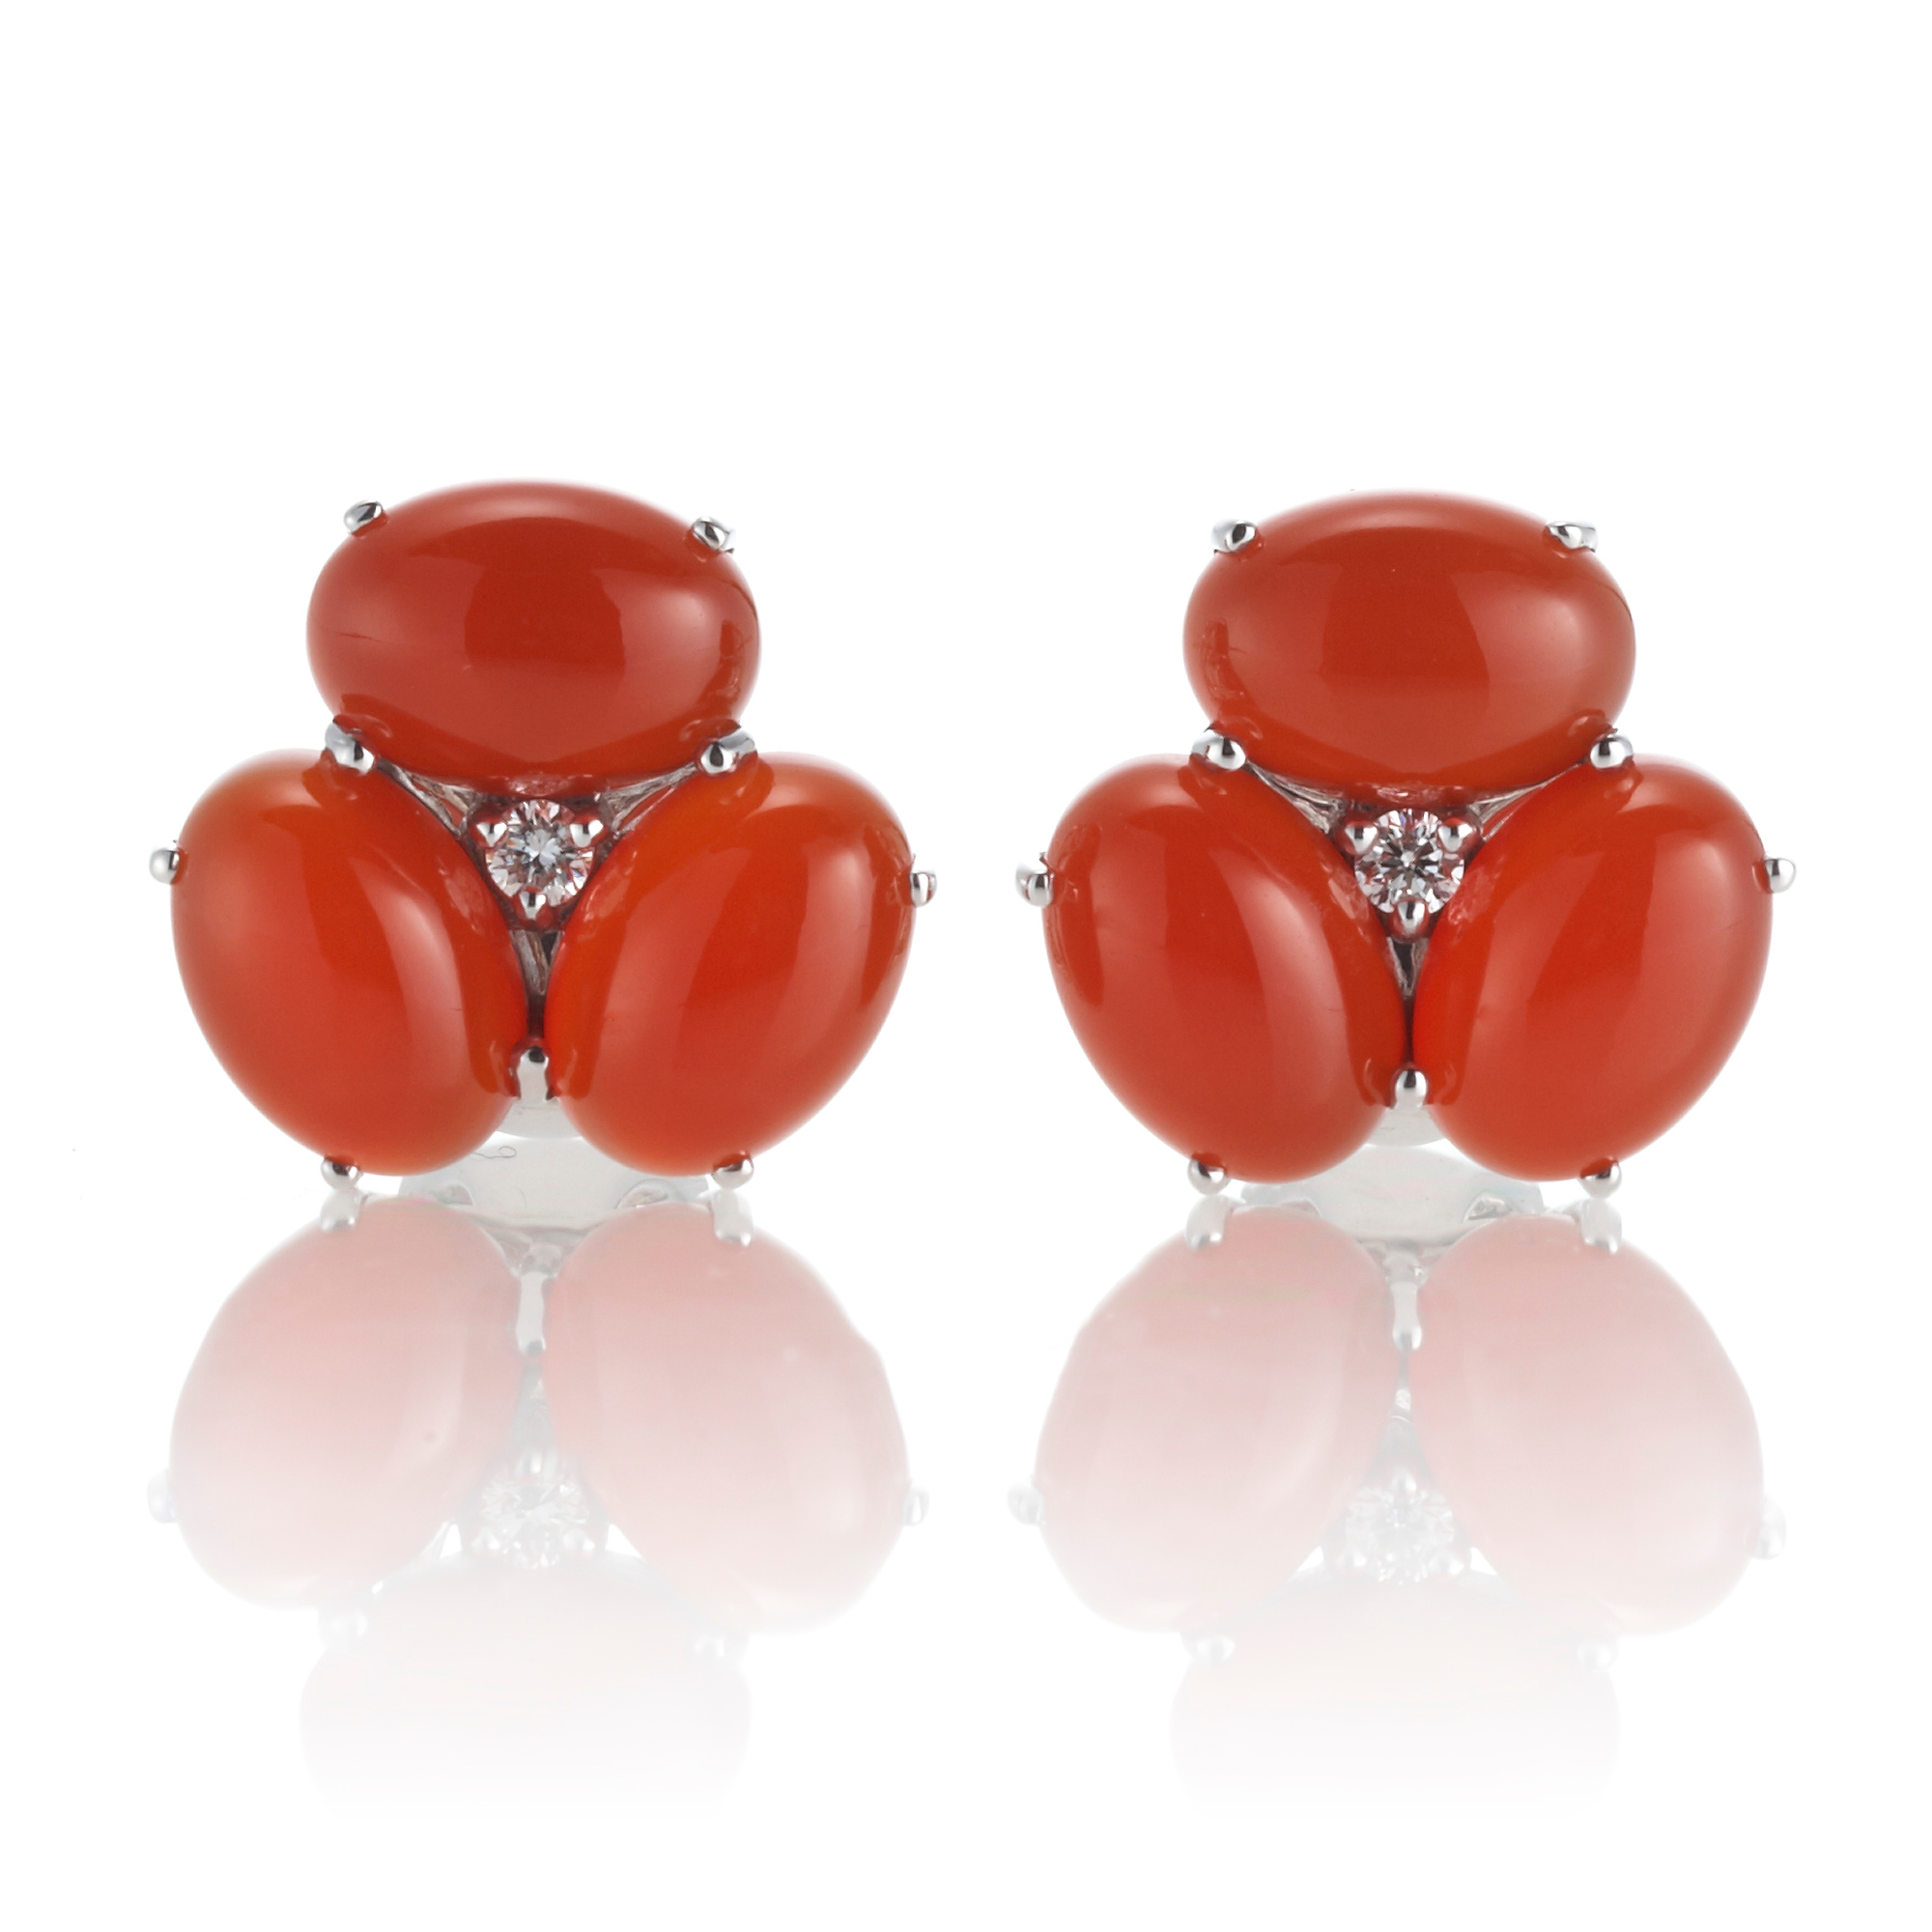 Gump's Carnelian Cabochon & Diamond Cluster Silver Earrings